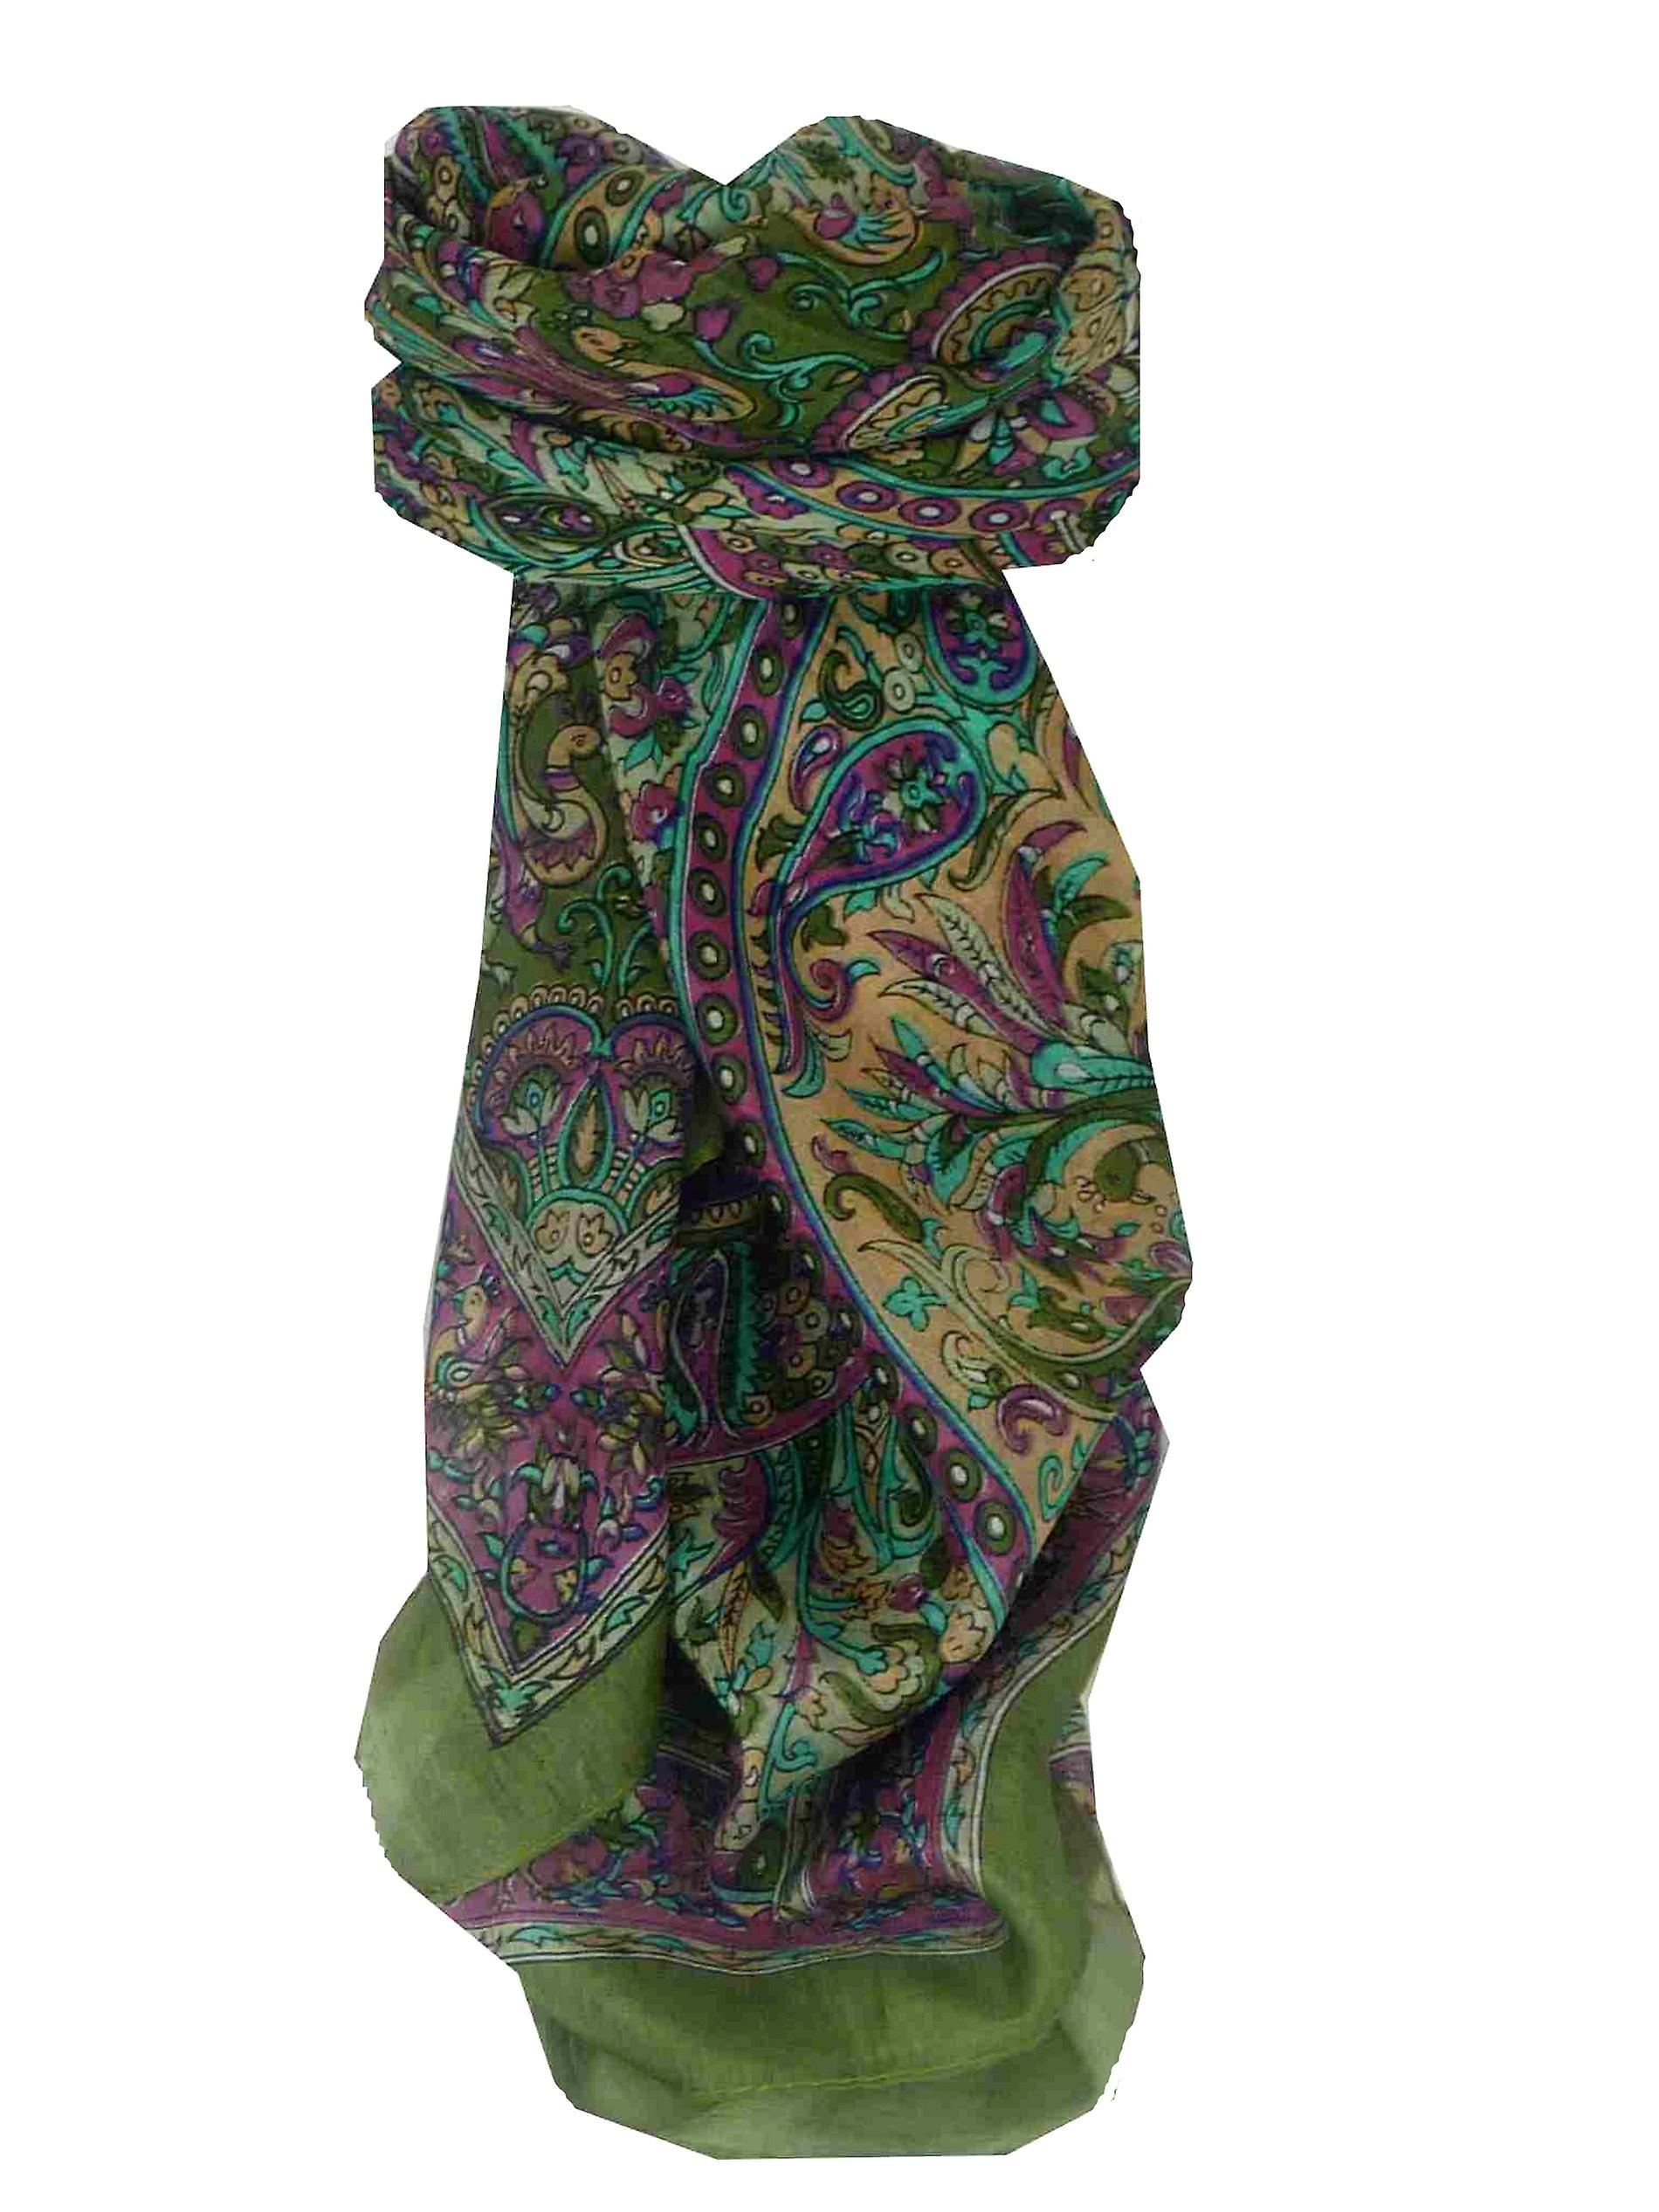 Mulberry Silk Traditional Square Scarf Mahe Green by Pashmina & Silk